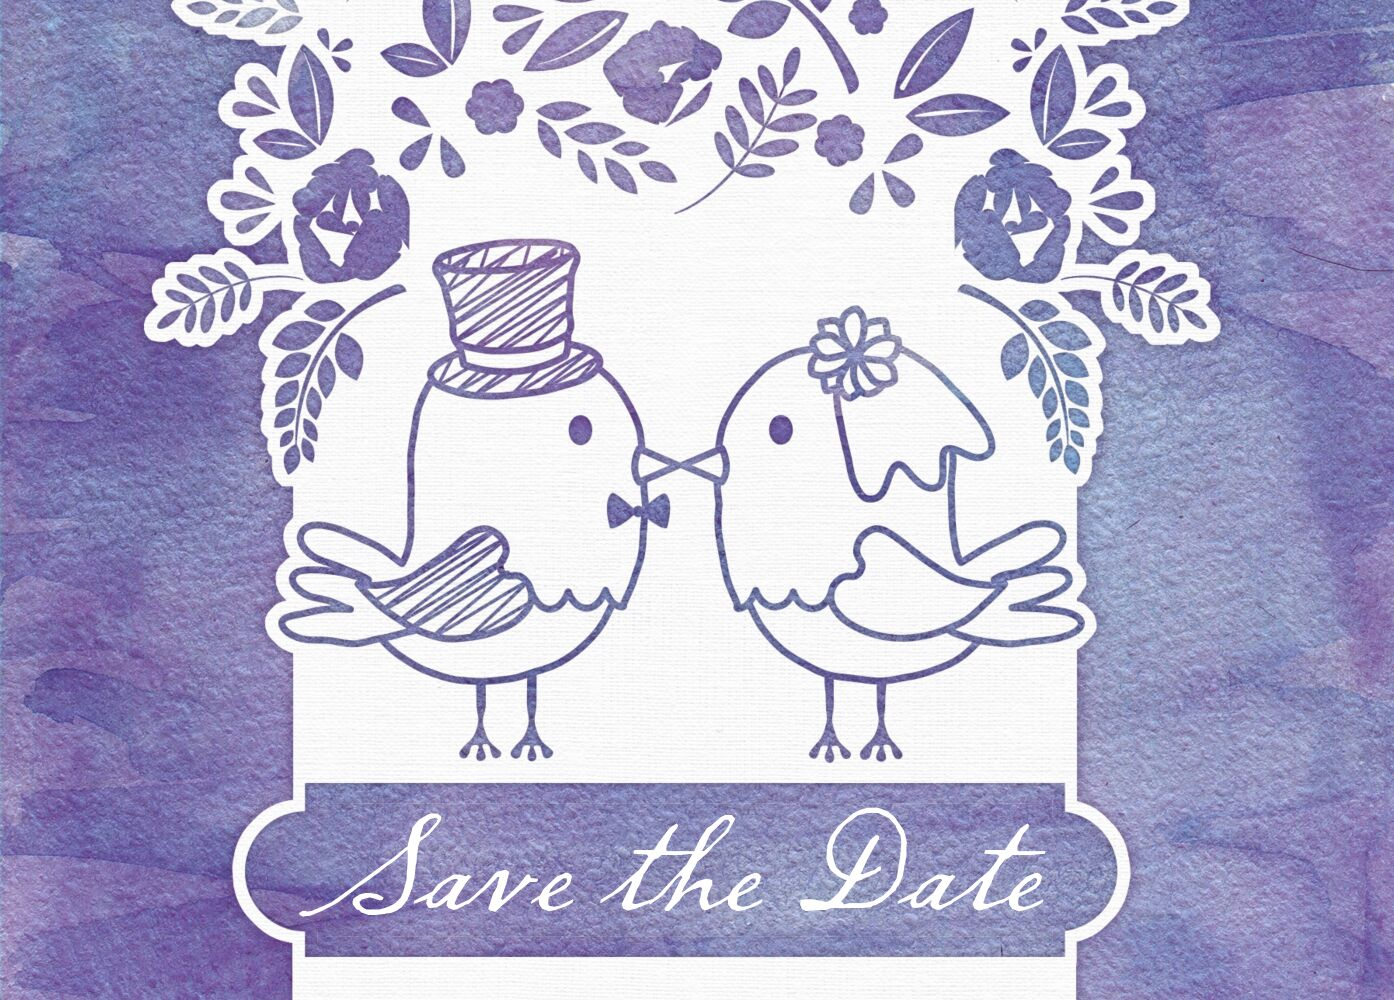 Ansicht 2 - Save-the-Date Vogelpaar